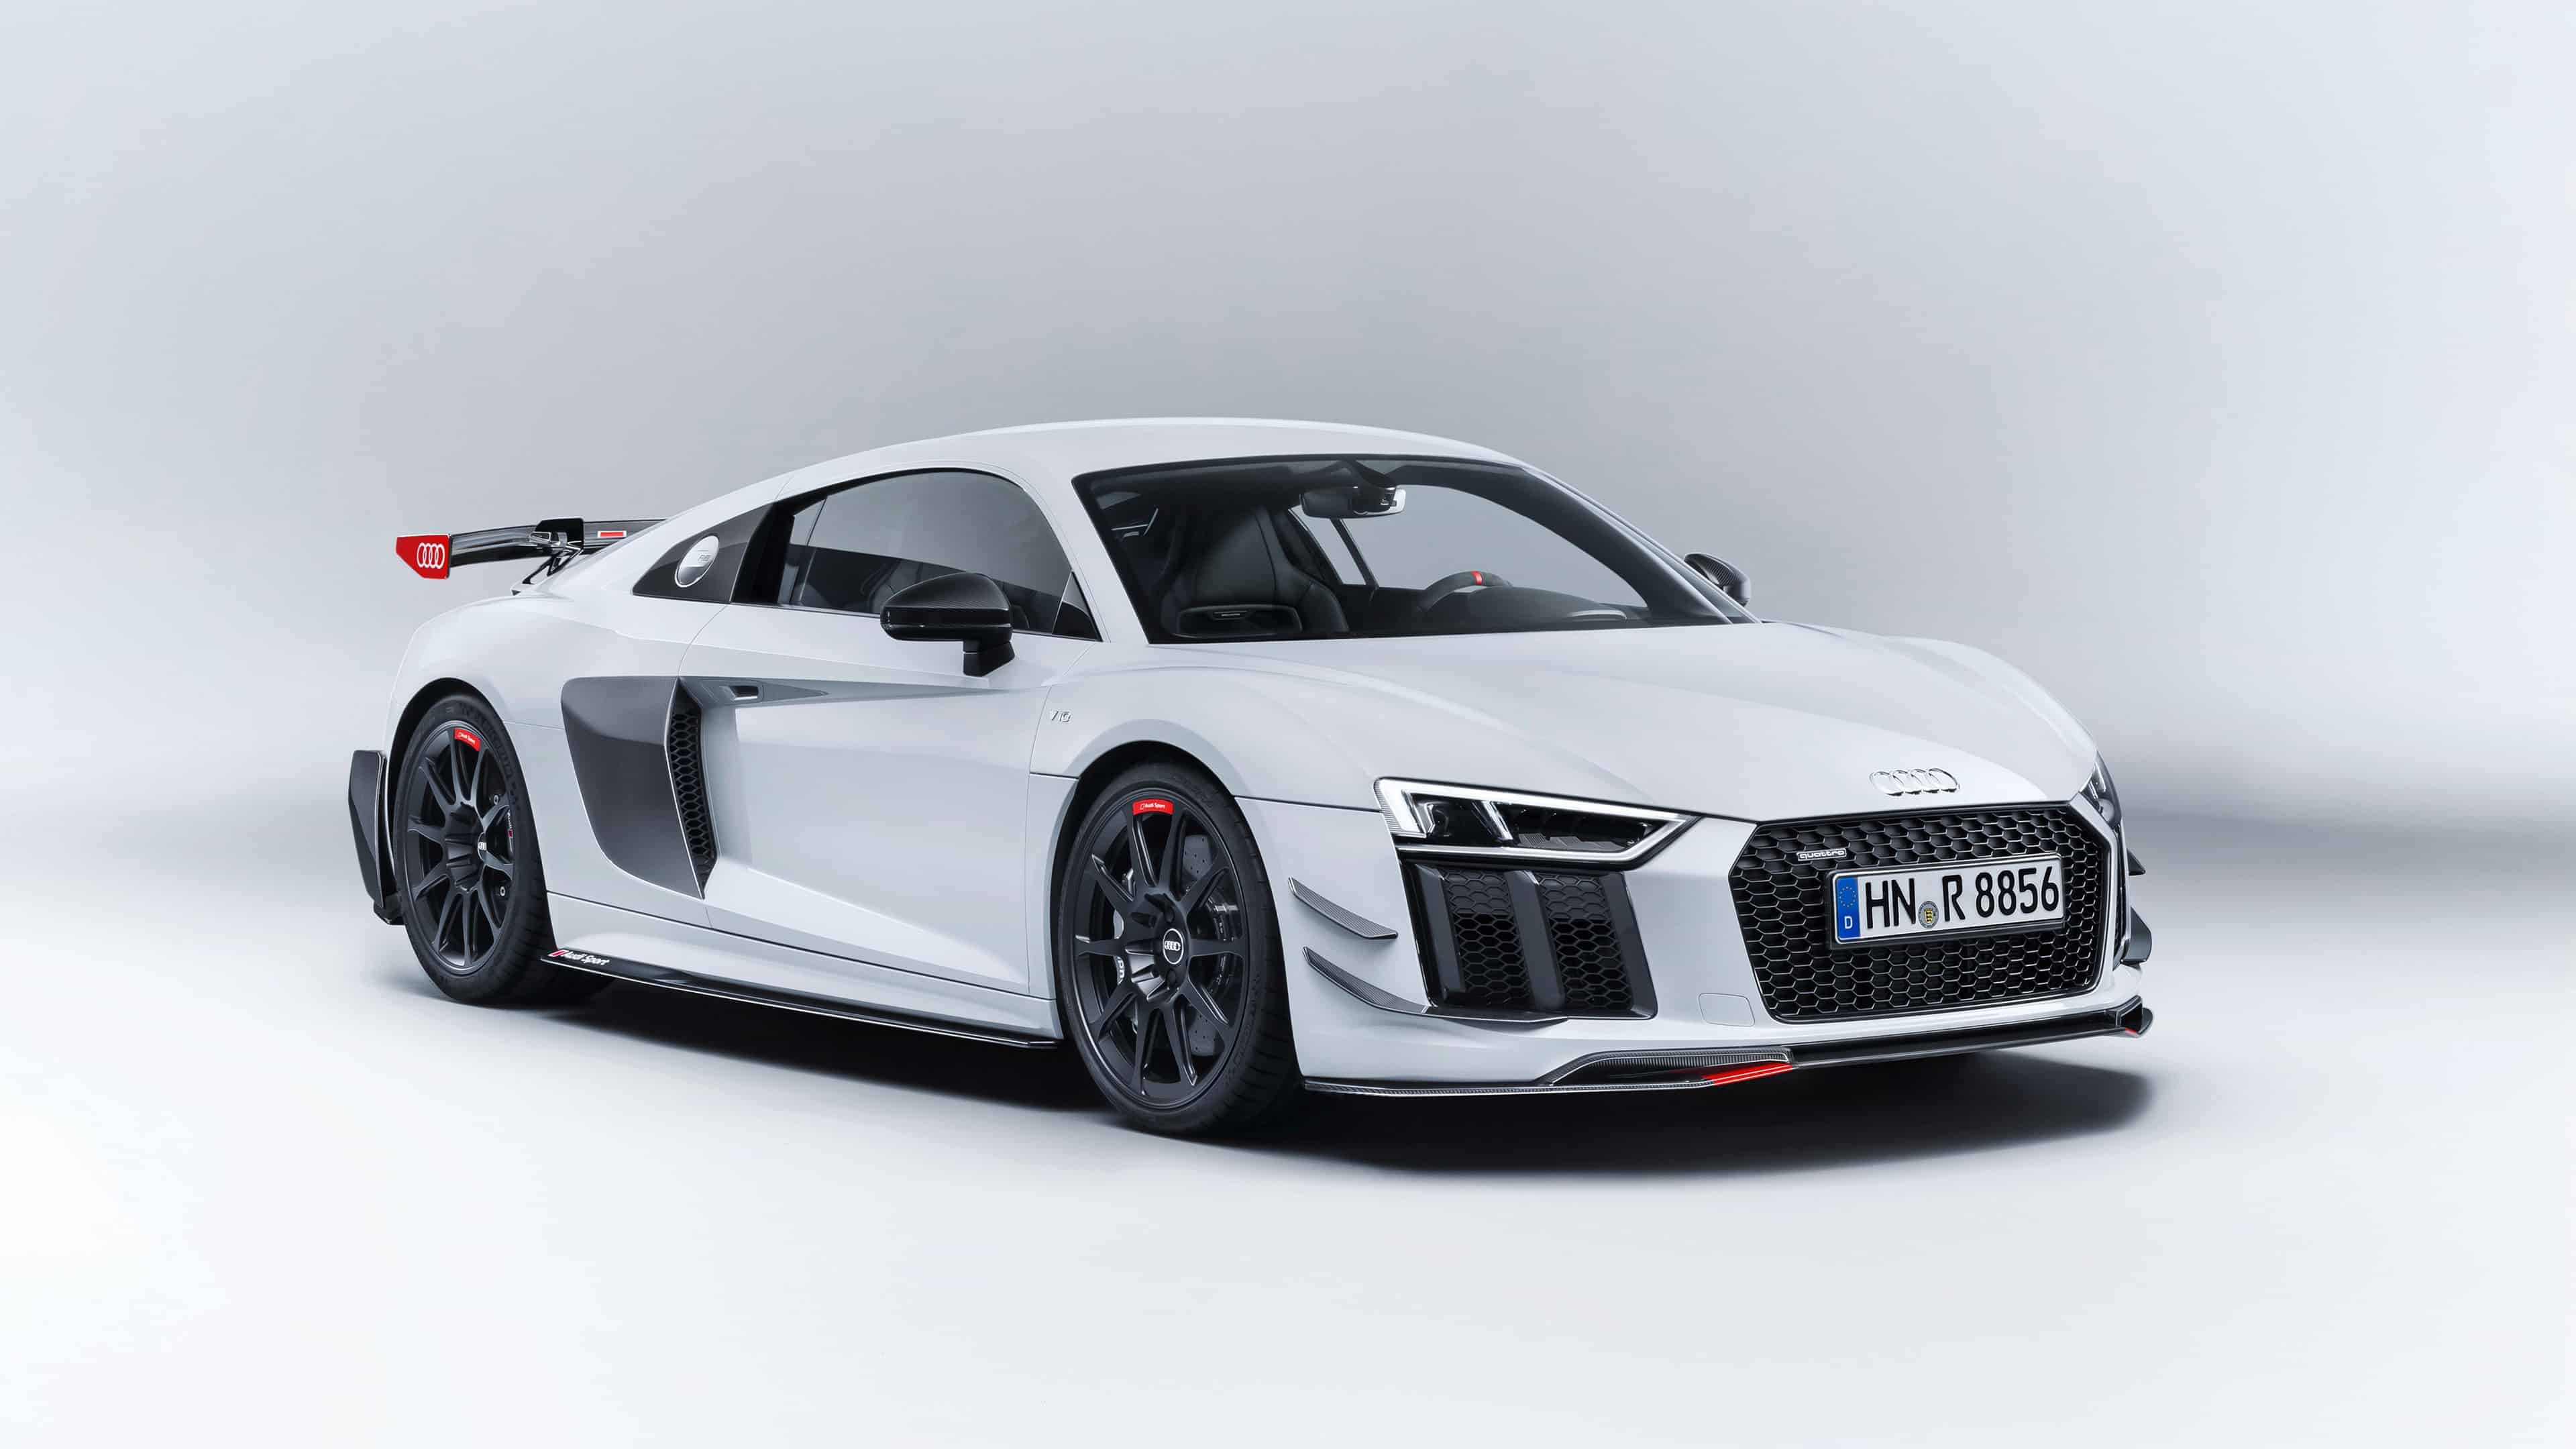 audi r8 white uhd 4k wallpaper